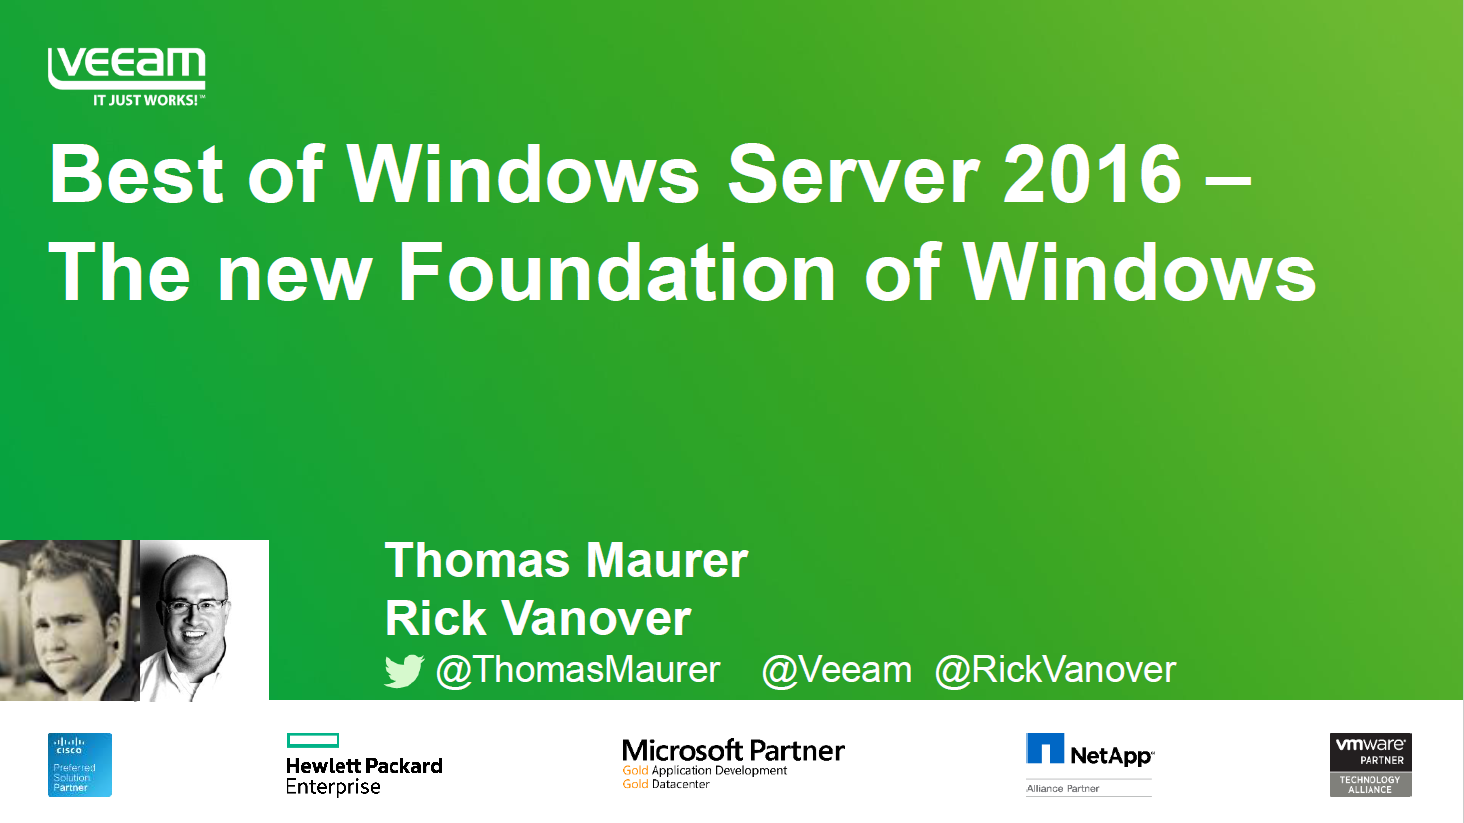 Best of Windows Server 2016 – The New Foundation of Windows